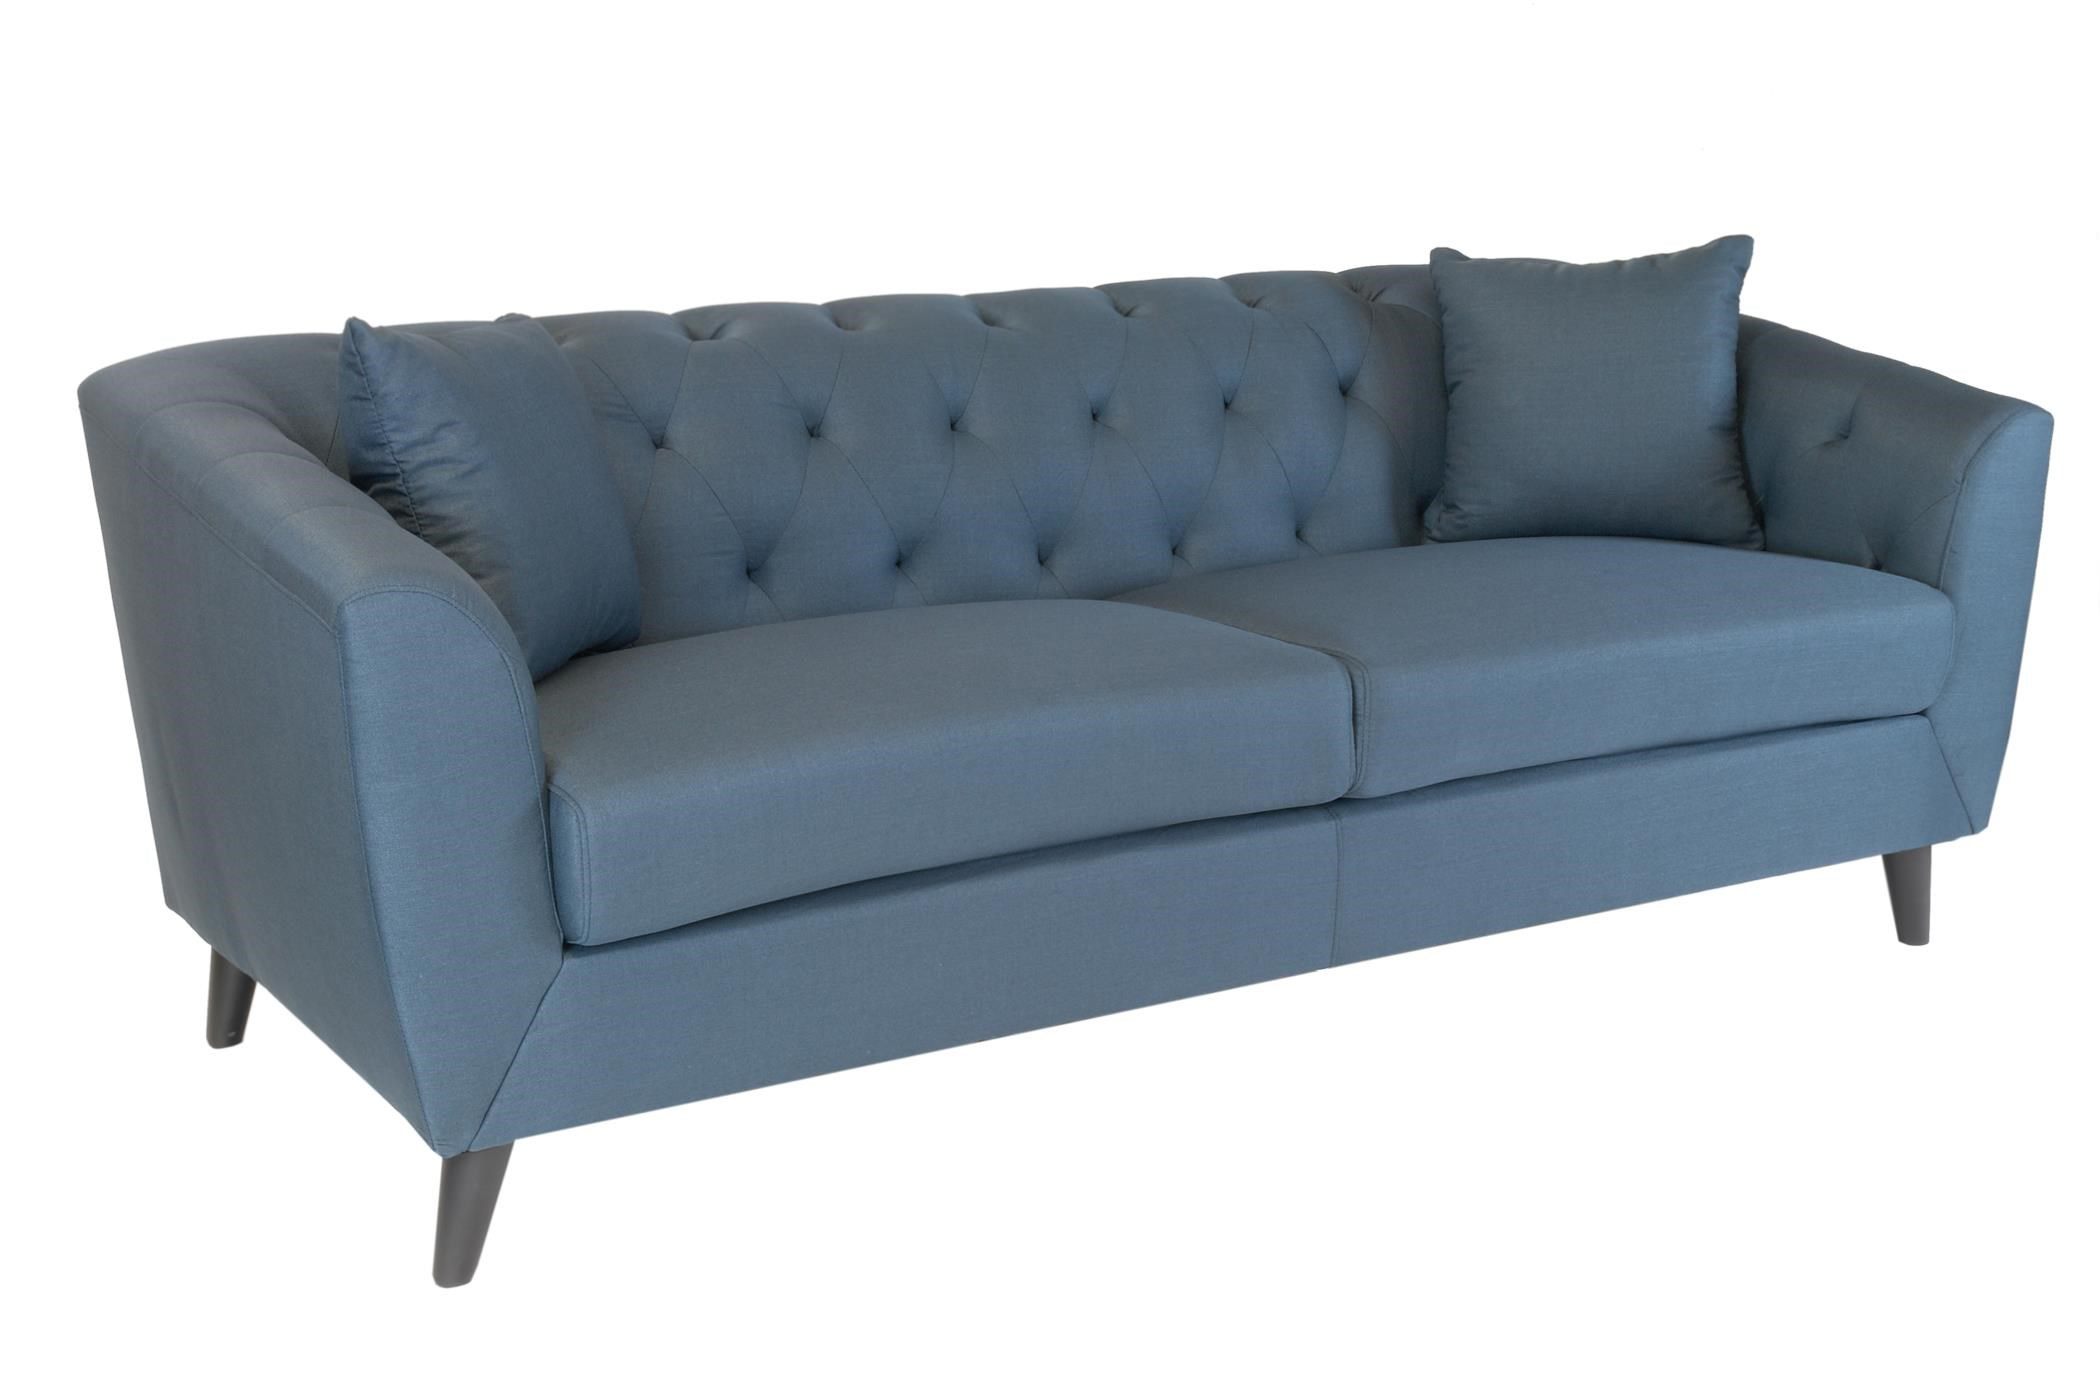 Actona Company Sofia Sofa : Red Knot : Sofa Honolulu, Oahu, Hawaii